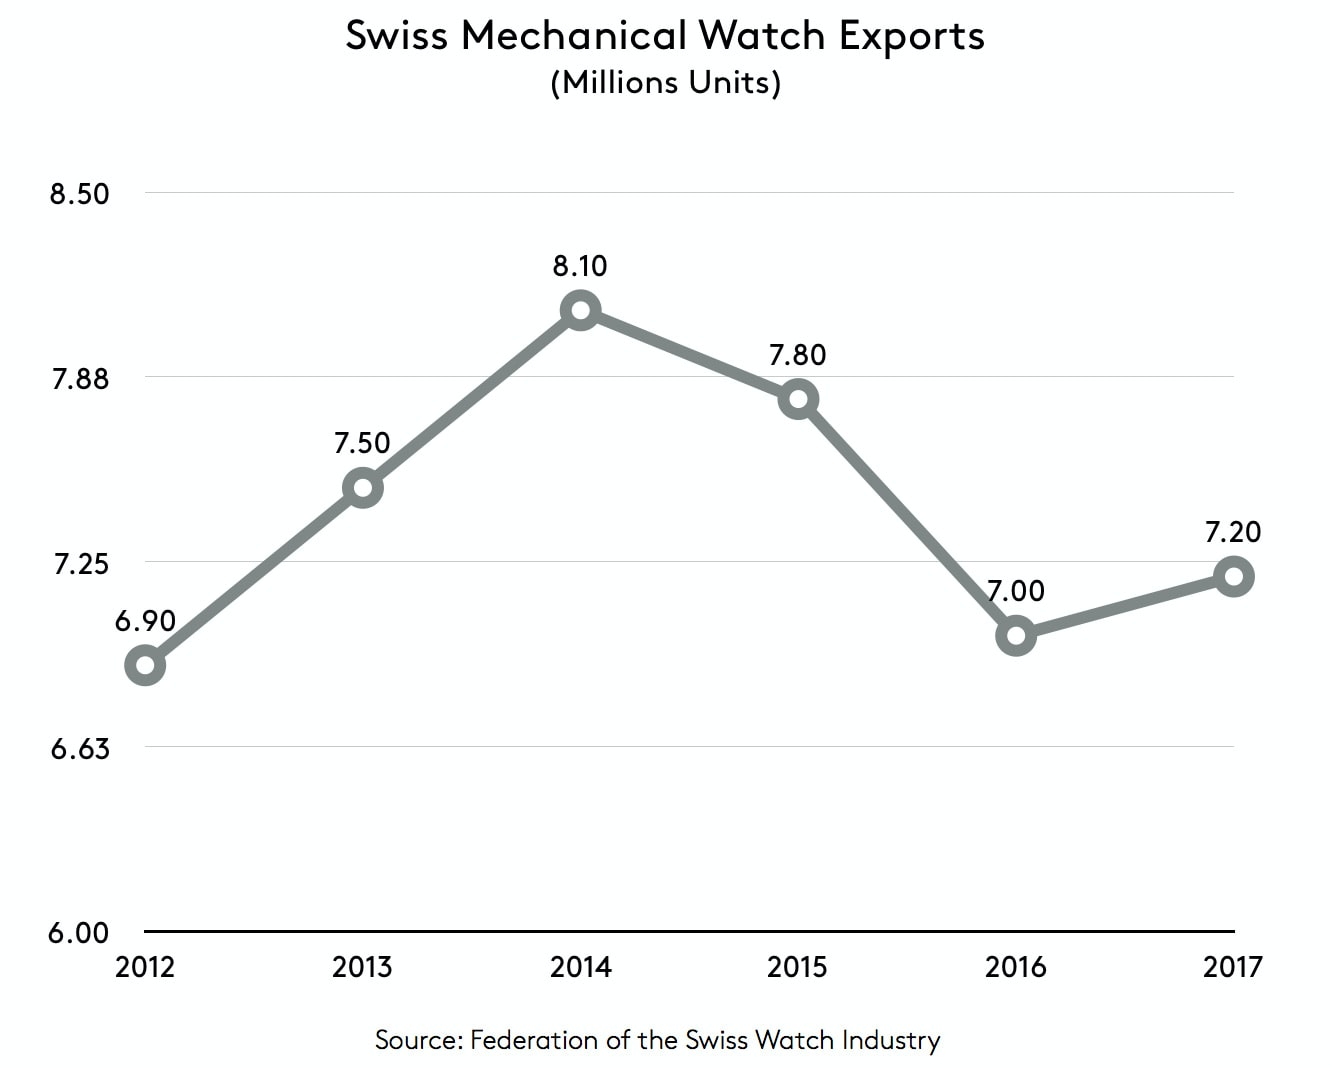 Business News: The Swiss Watch Industry Shows Positive